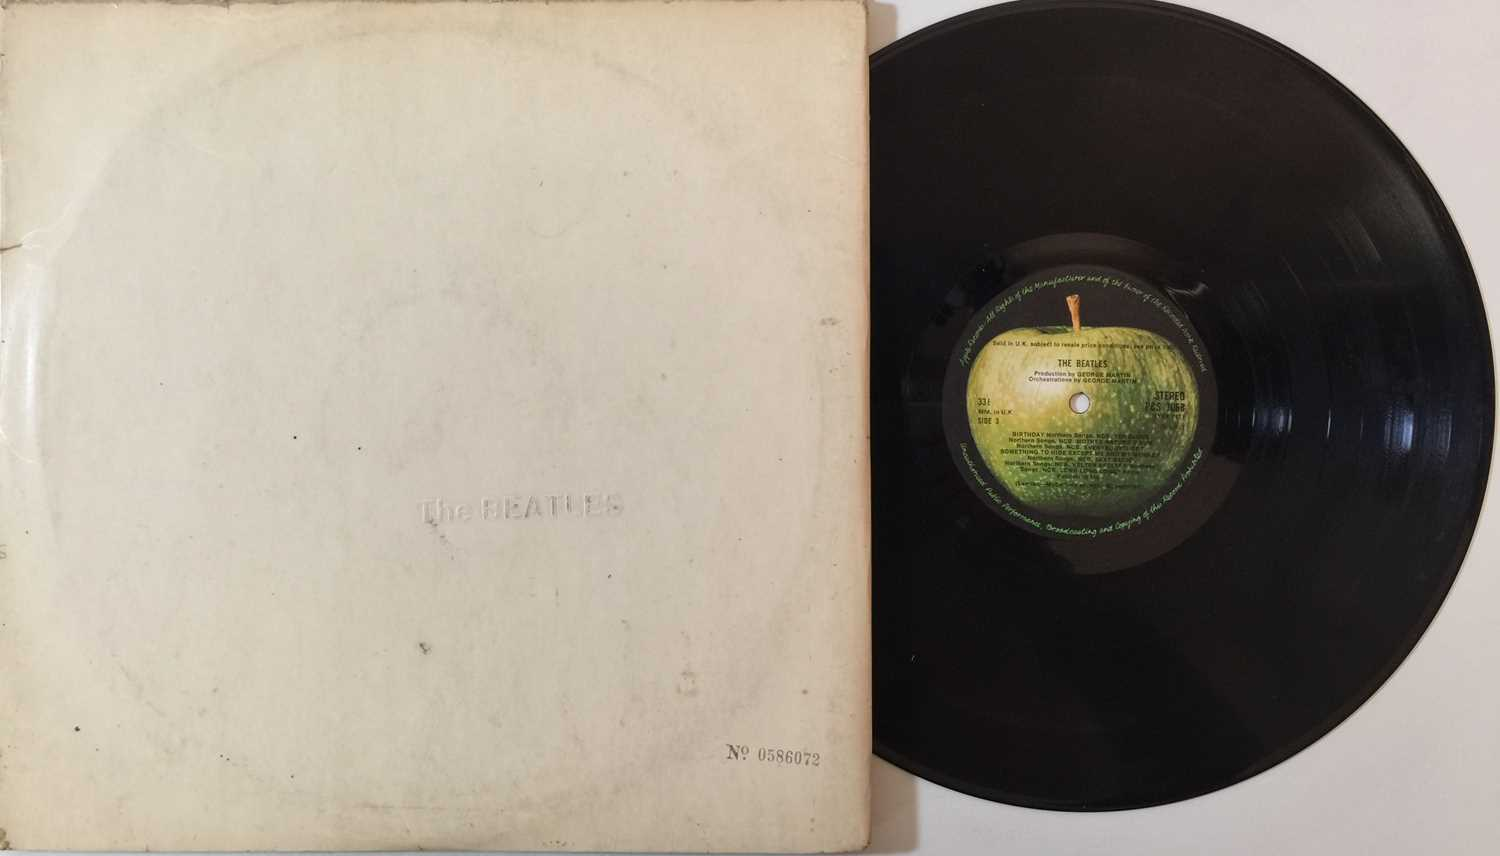 THE BEATLES - 60s UK LPs - Image 3 of 3